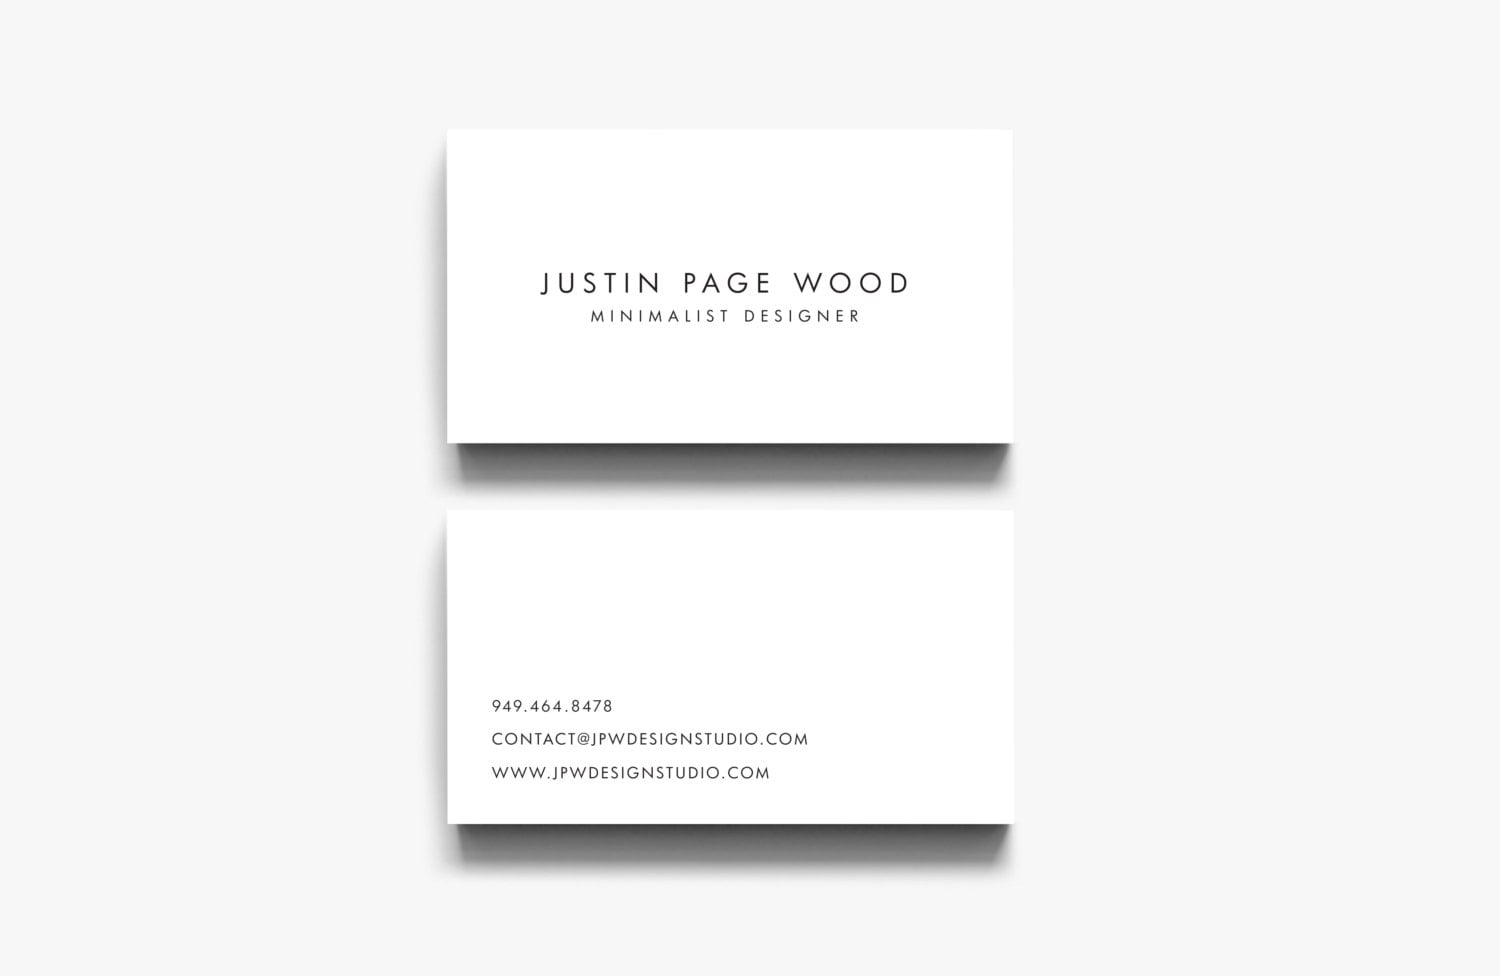 Business Cards Calling Cards Business Card Download